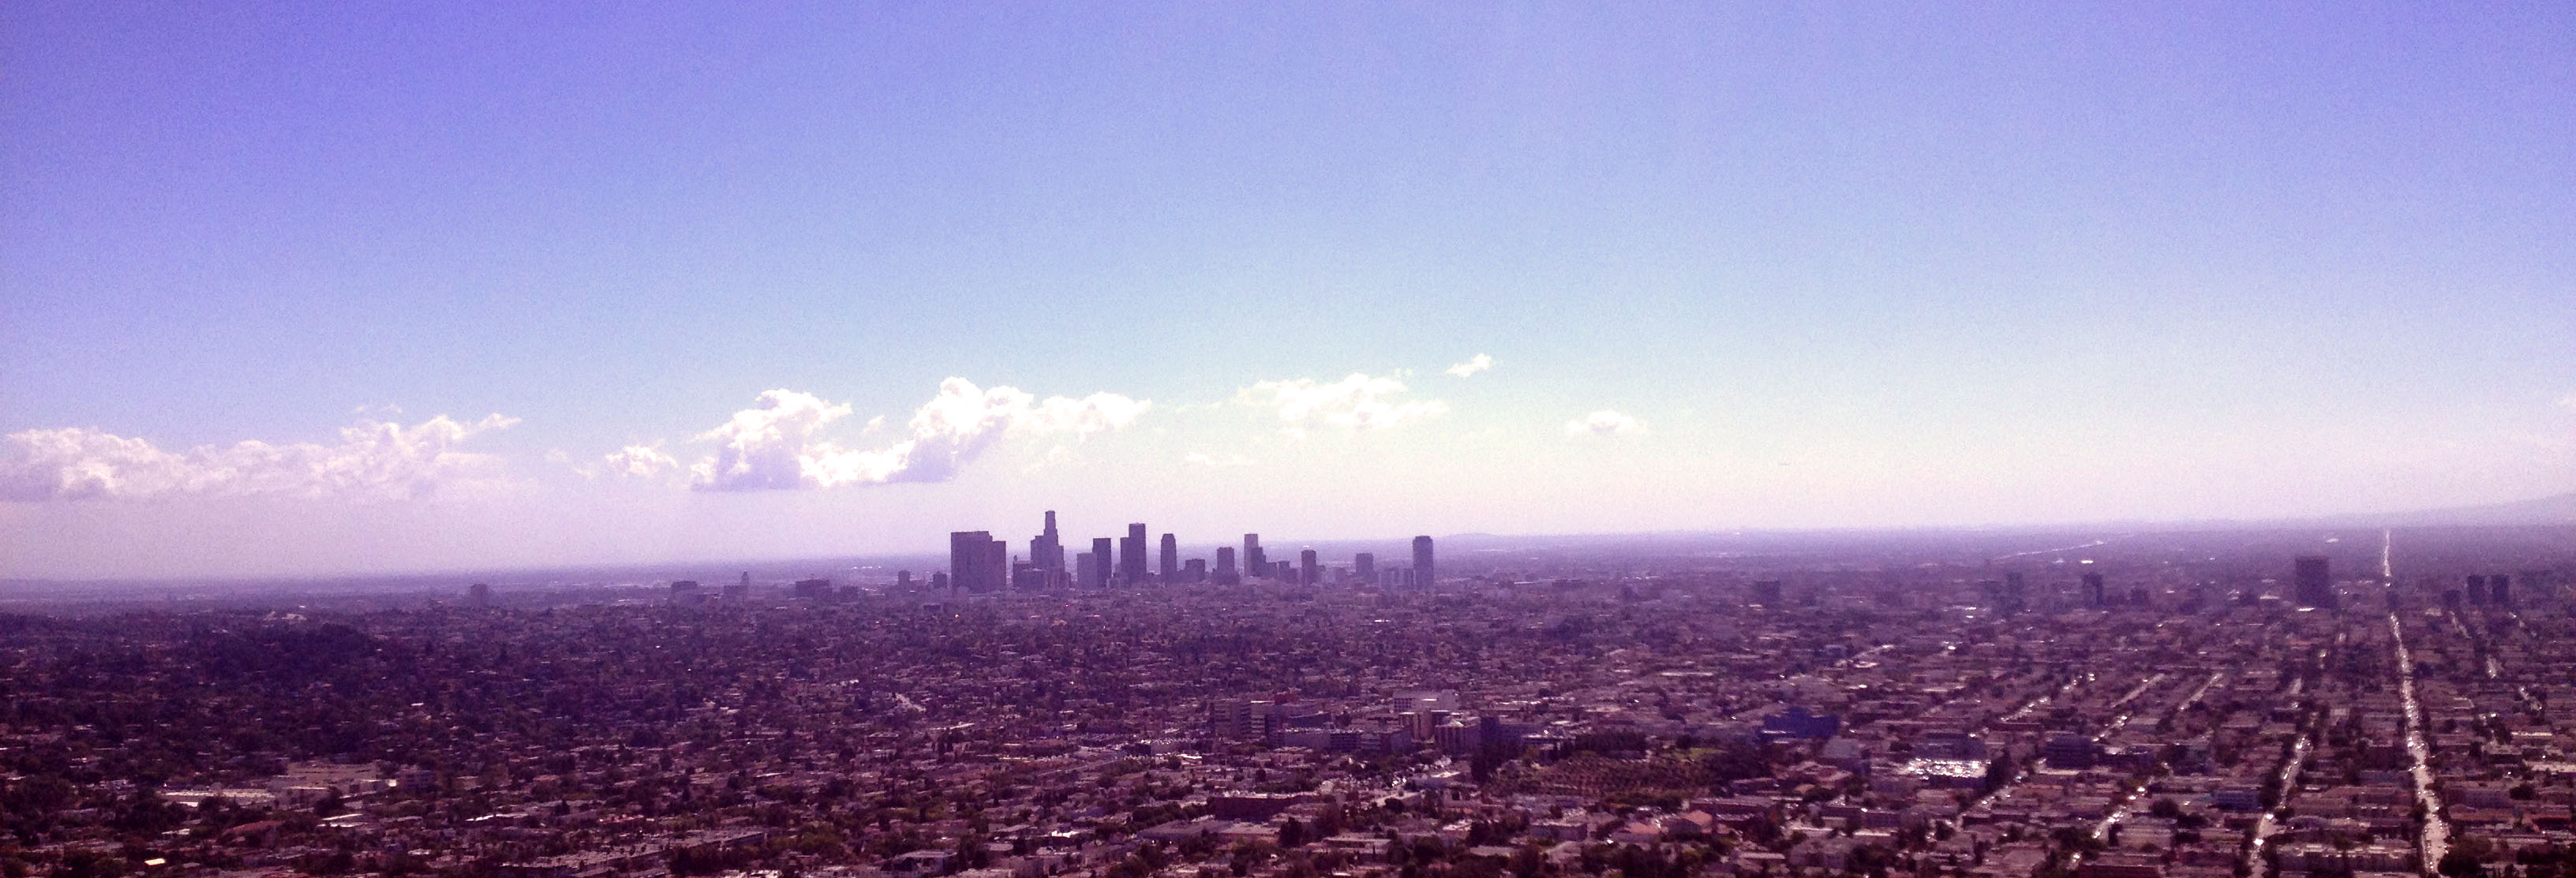 Welcome to the City of Angels